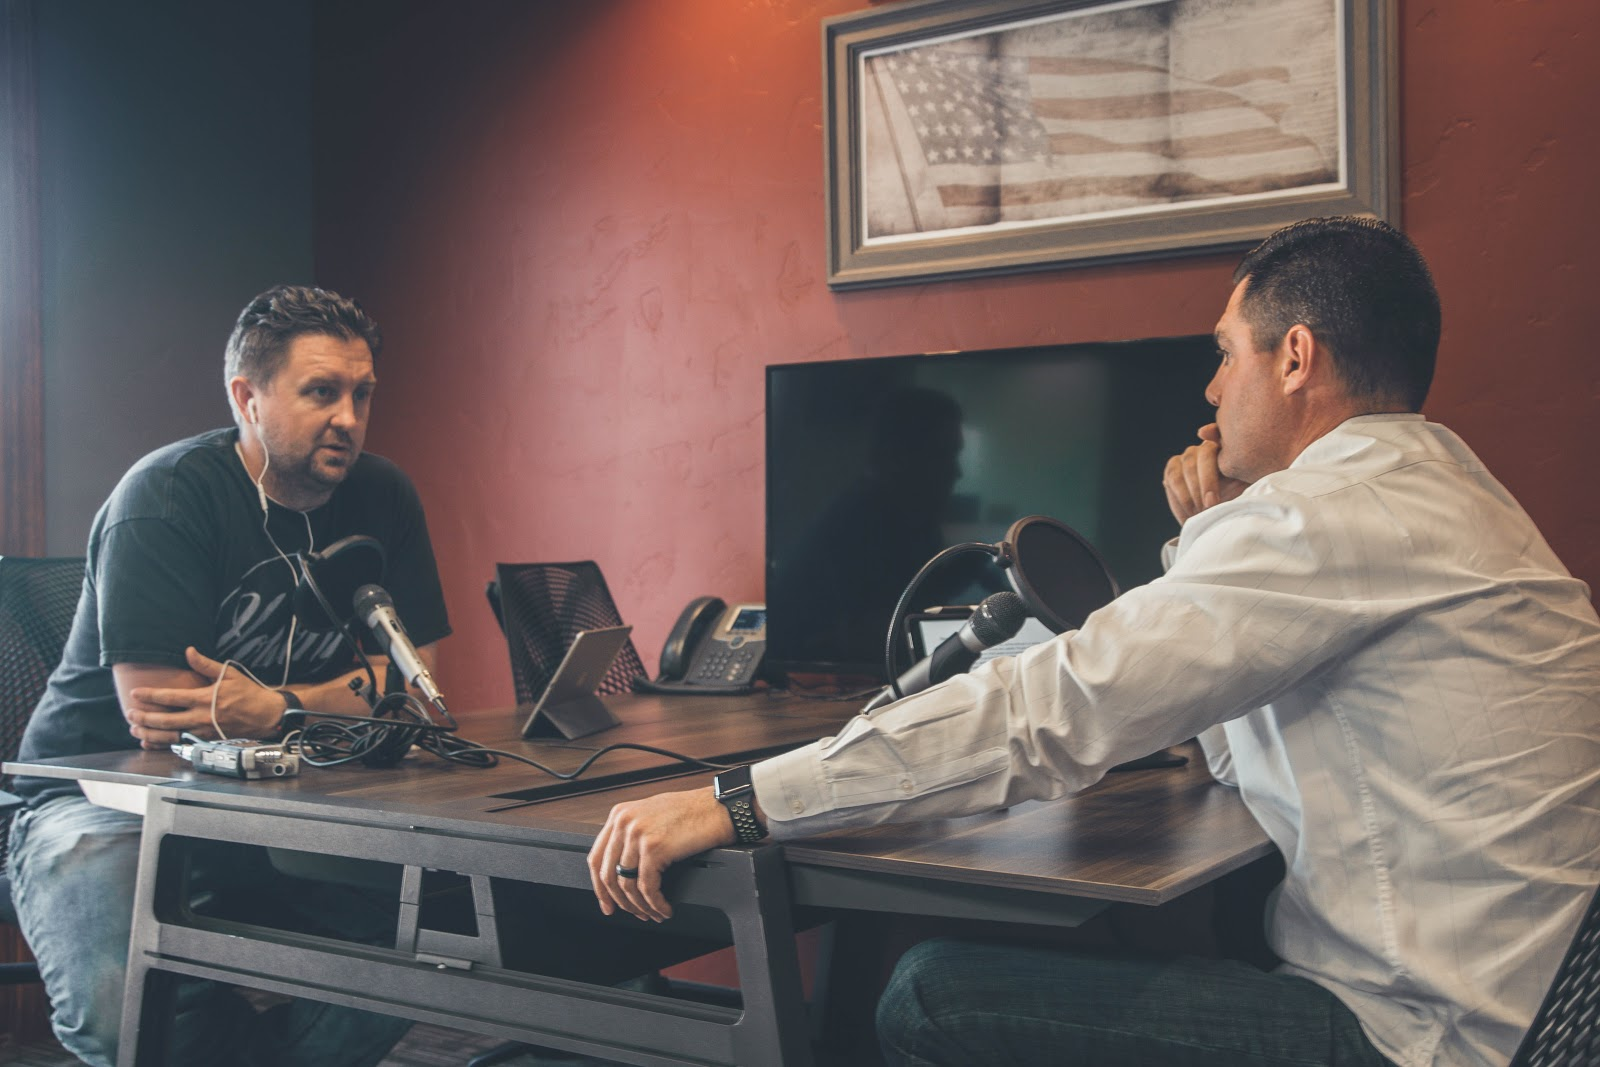 Two men discussing how to spread the gospel while recording a podcast.